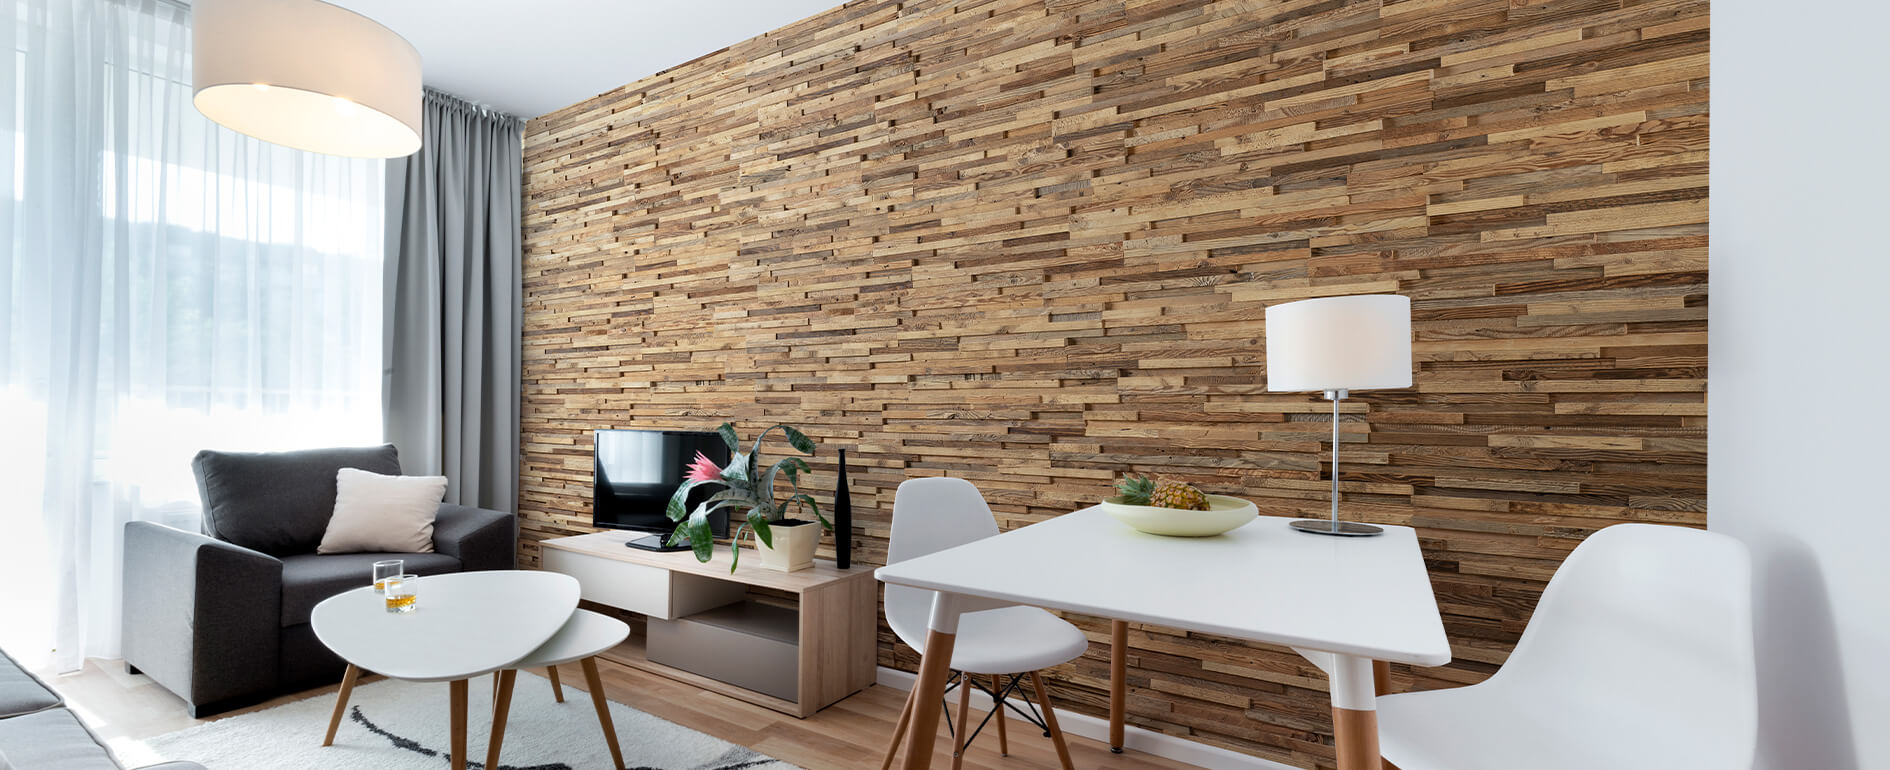 3d wooden slat wall panels used in a living room